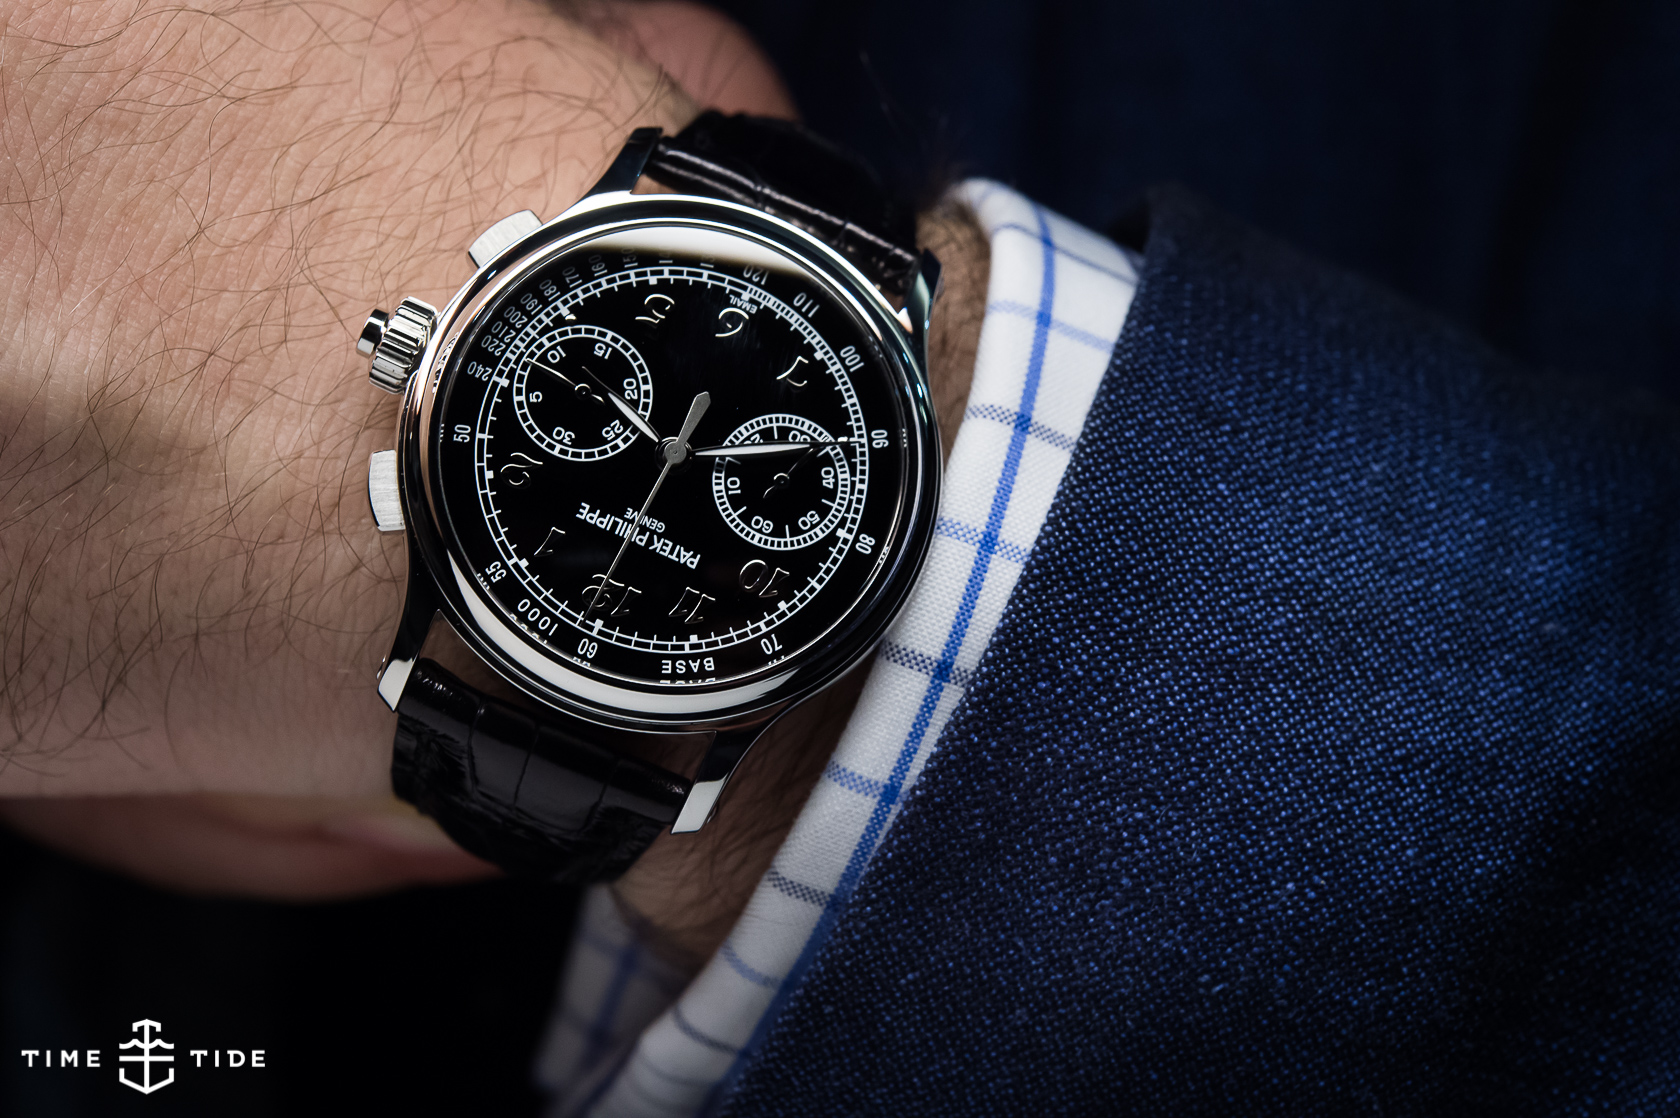 Hands On The Patek Philippe Split Seconds Chronograph Ref